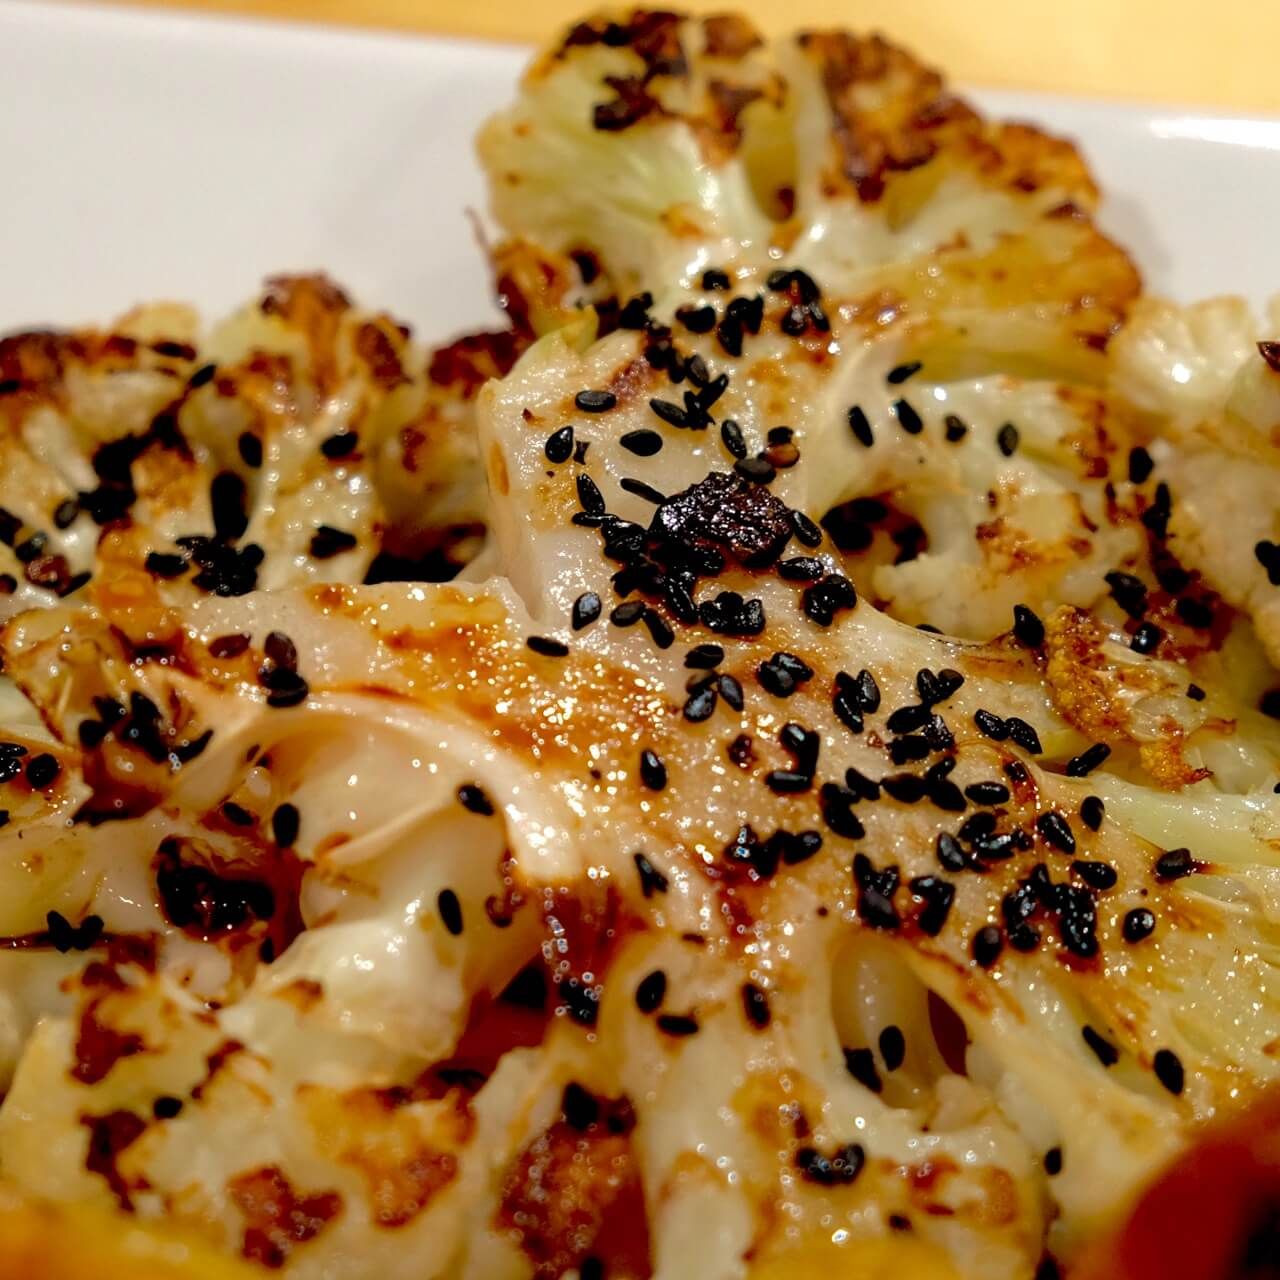 Cauliflower, truffle and black sesame